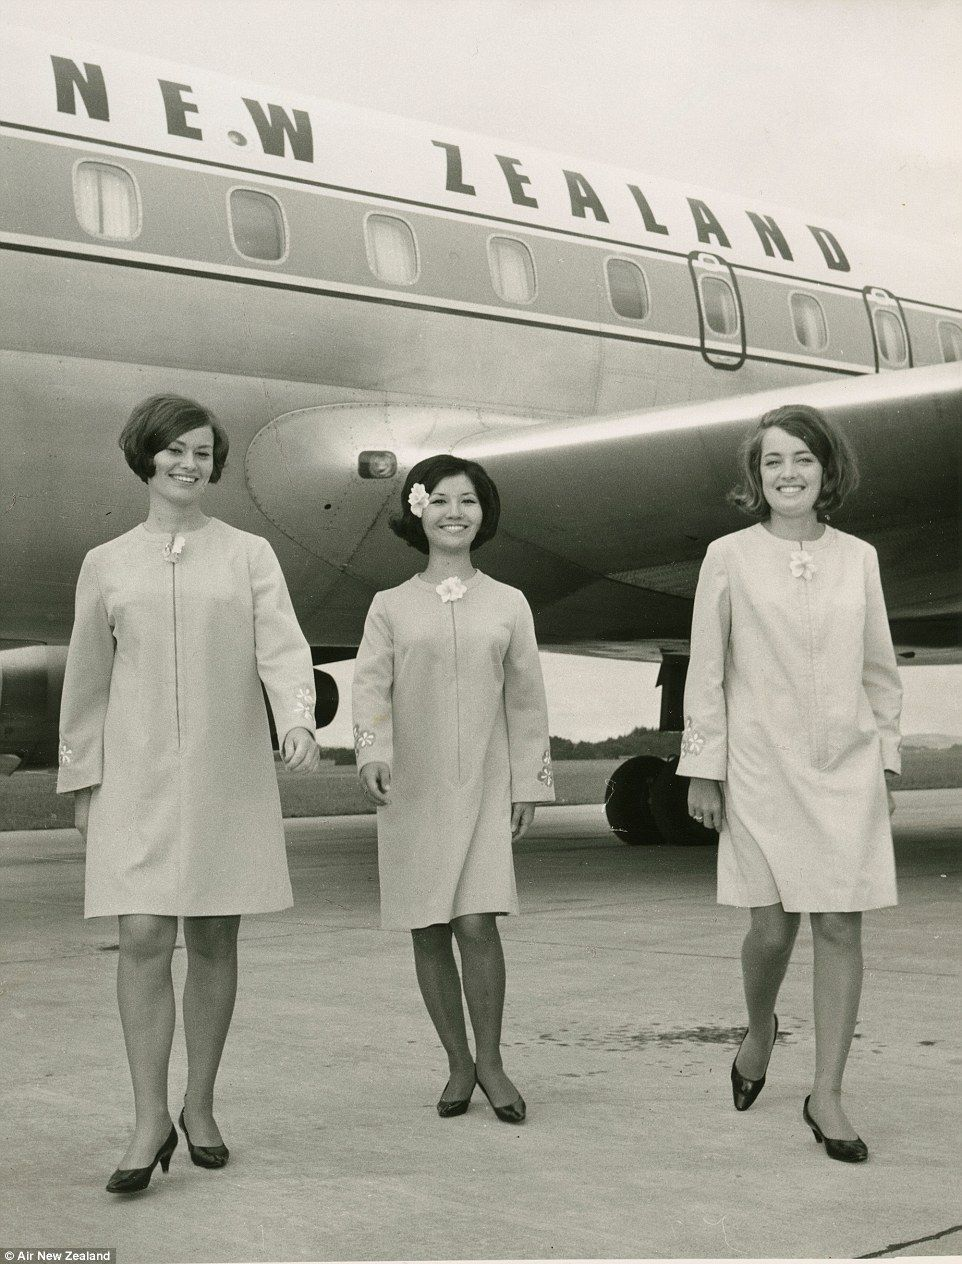 Photos from Air New Zealand's archives reveal golden age